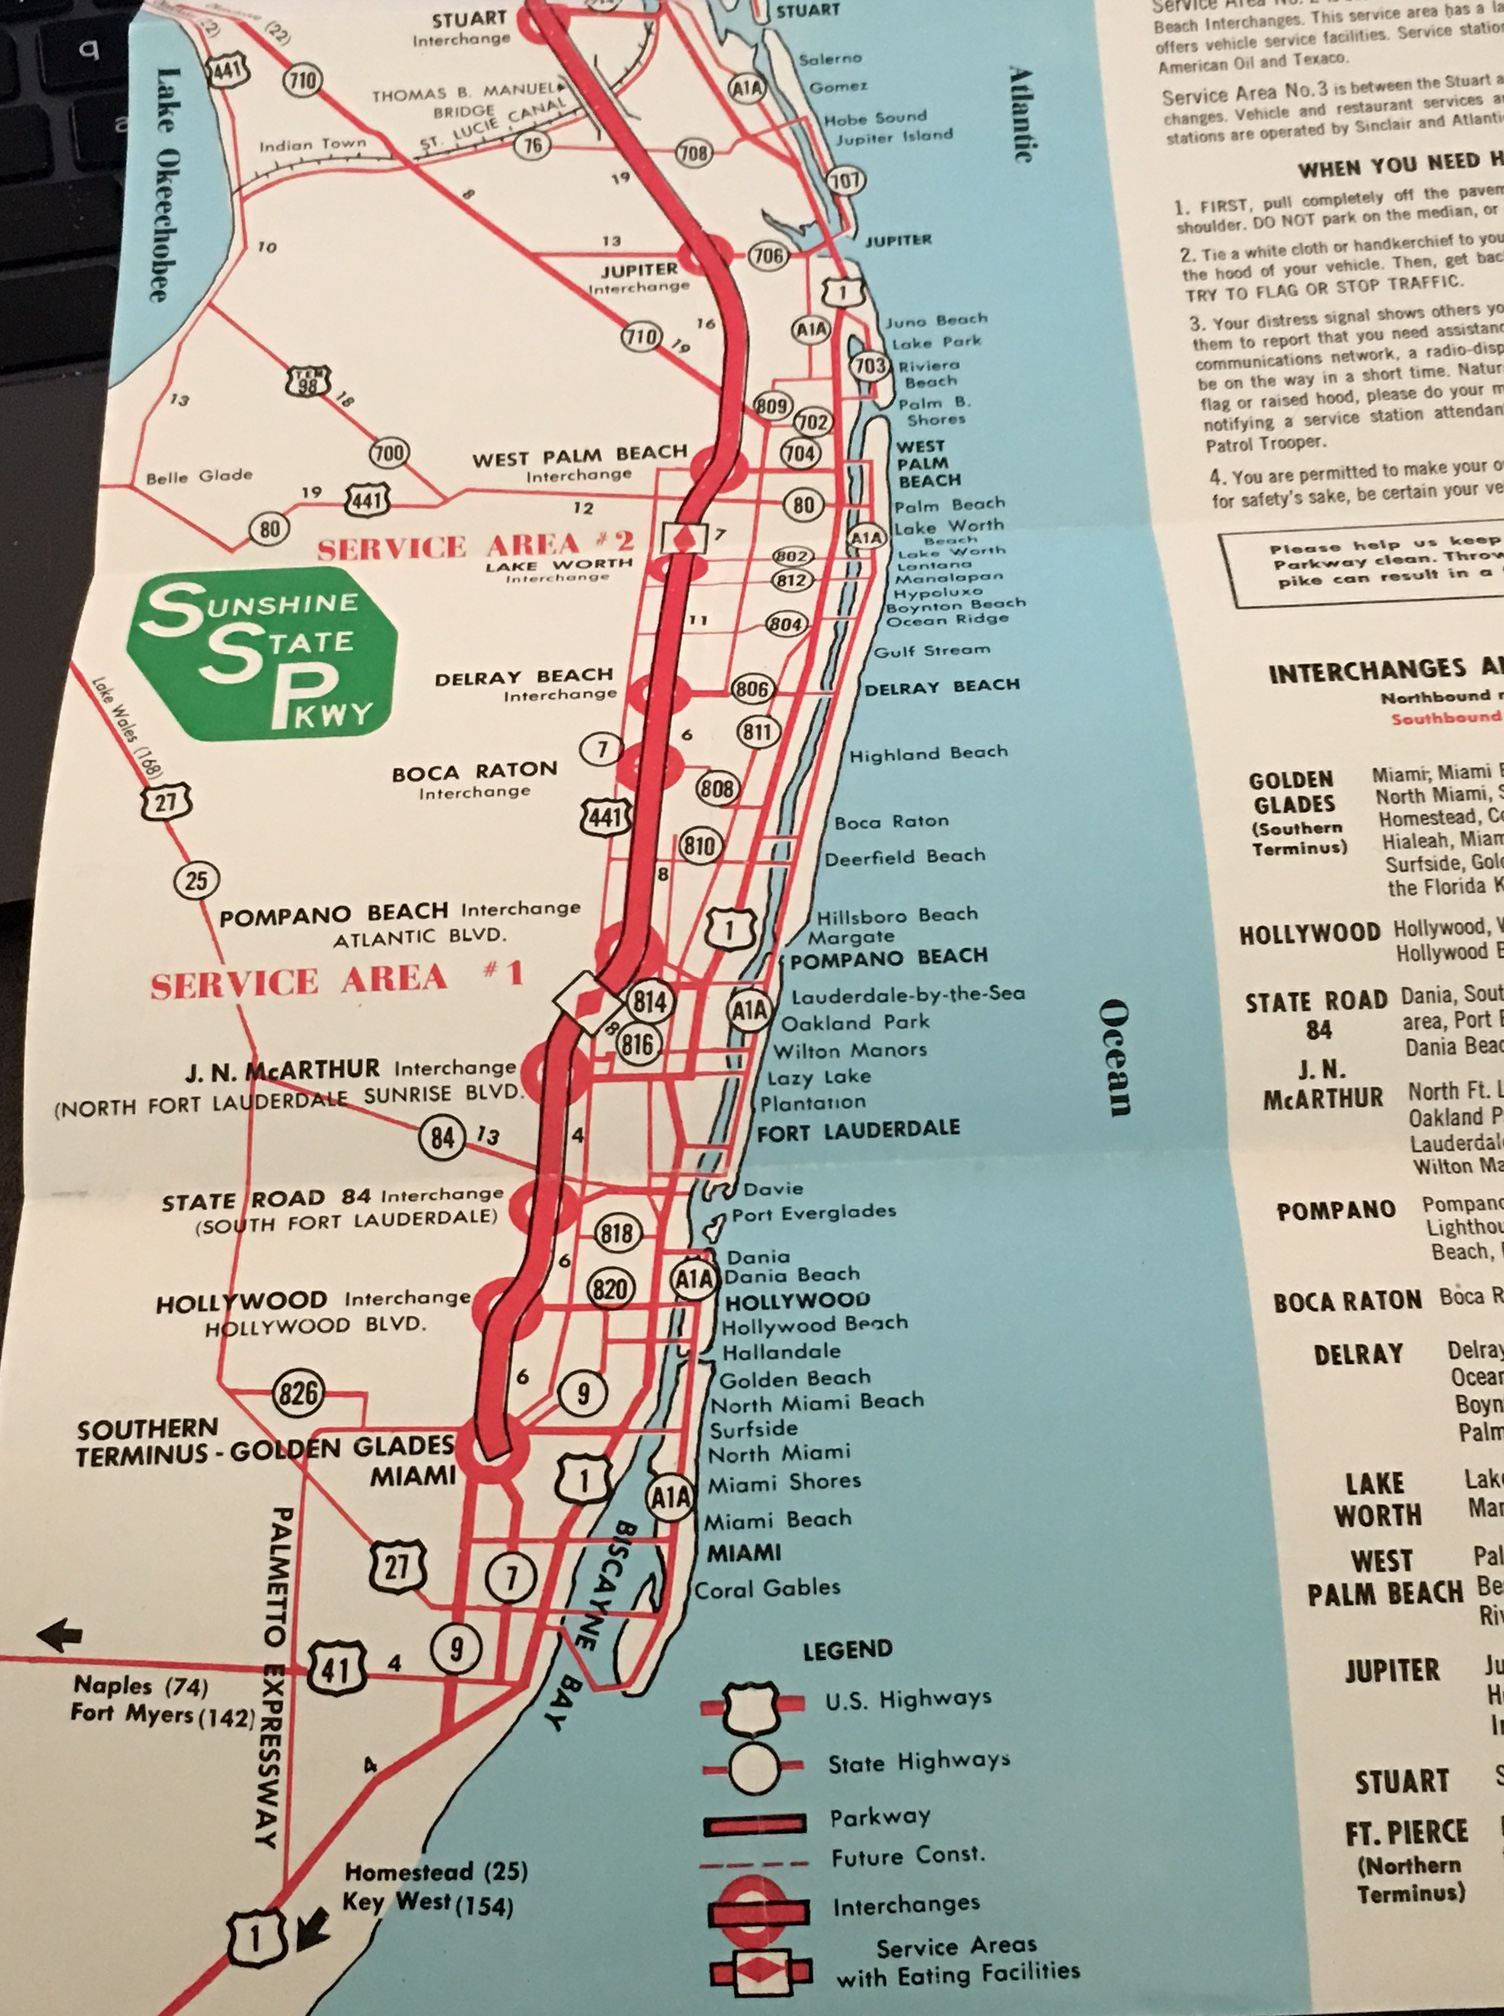 Florida Turnpike Map.Flashback Friday Florida S Turnpike At 60 Part 1 Of 3 The Florida